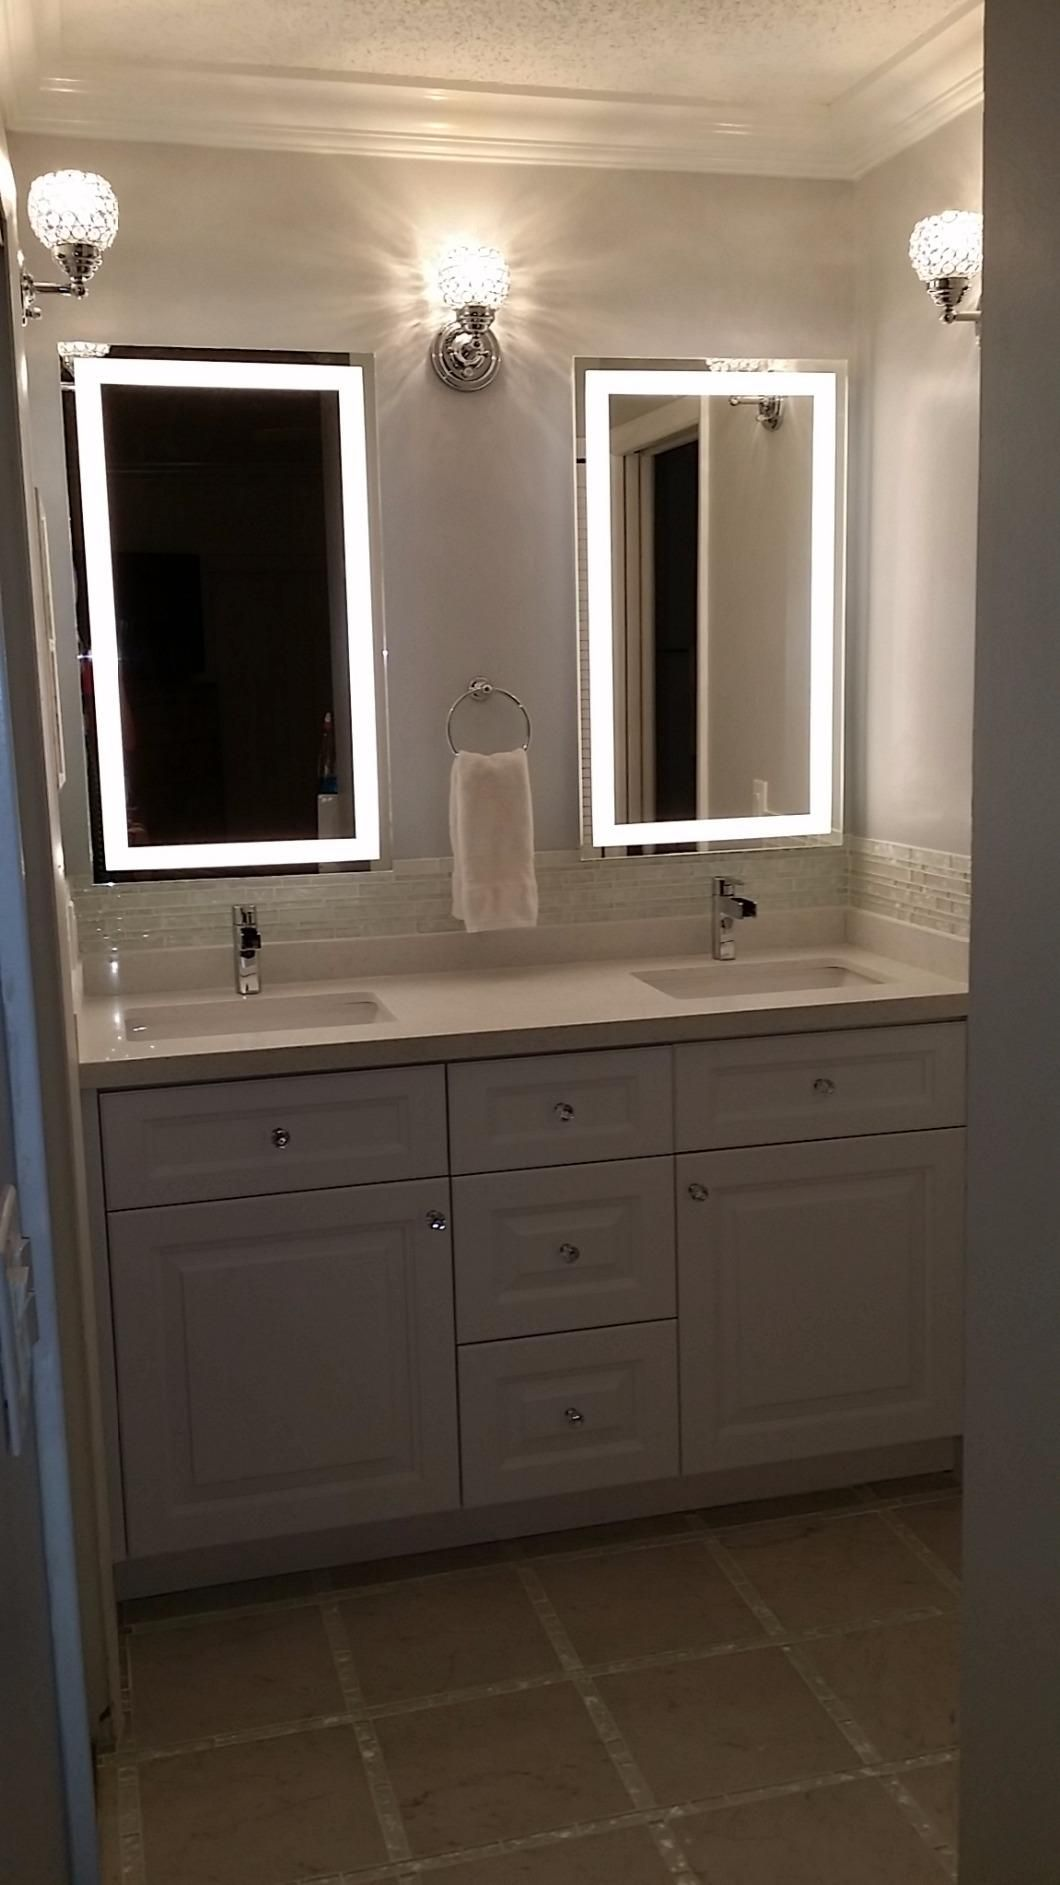 Bathroom Mirror Backlit 8 reasons why you should have a backlit mirror in your bathroom